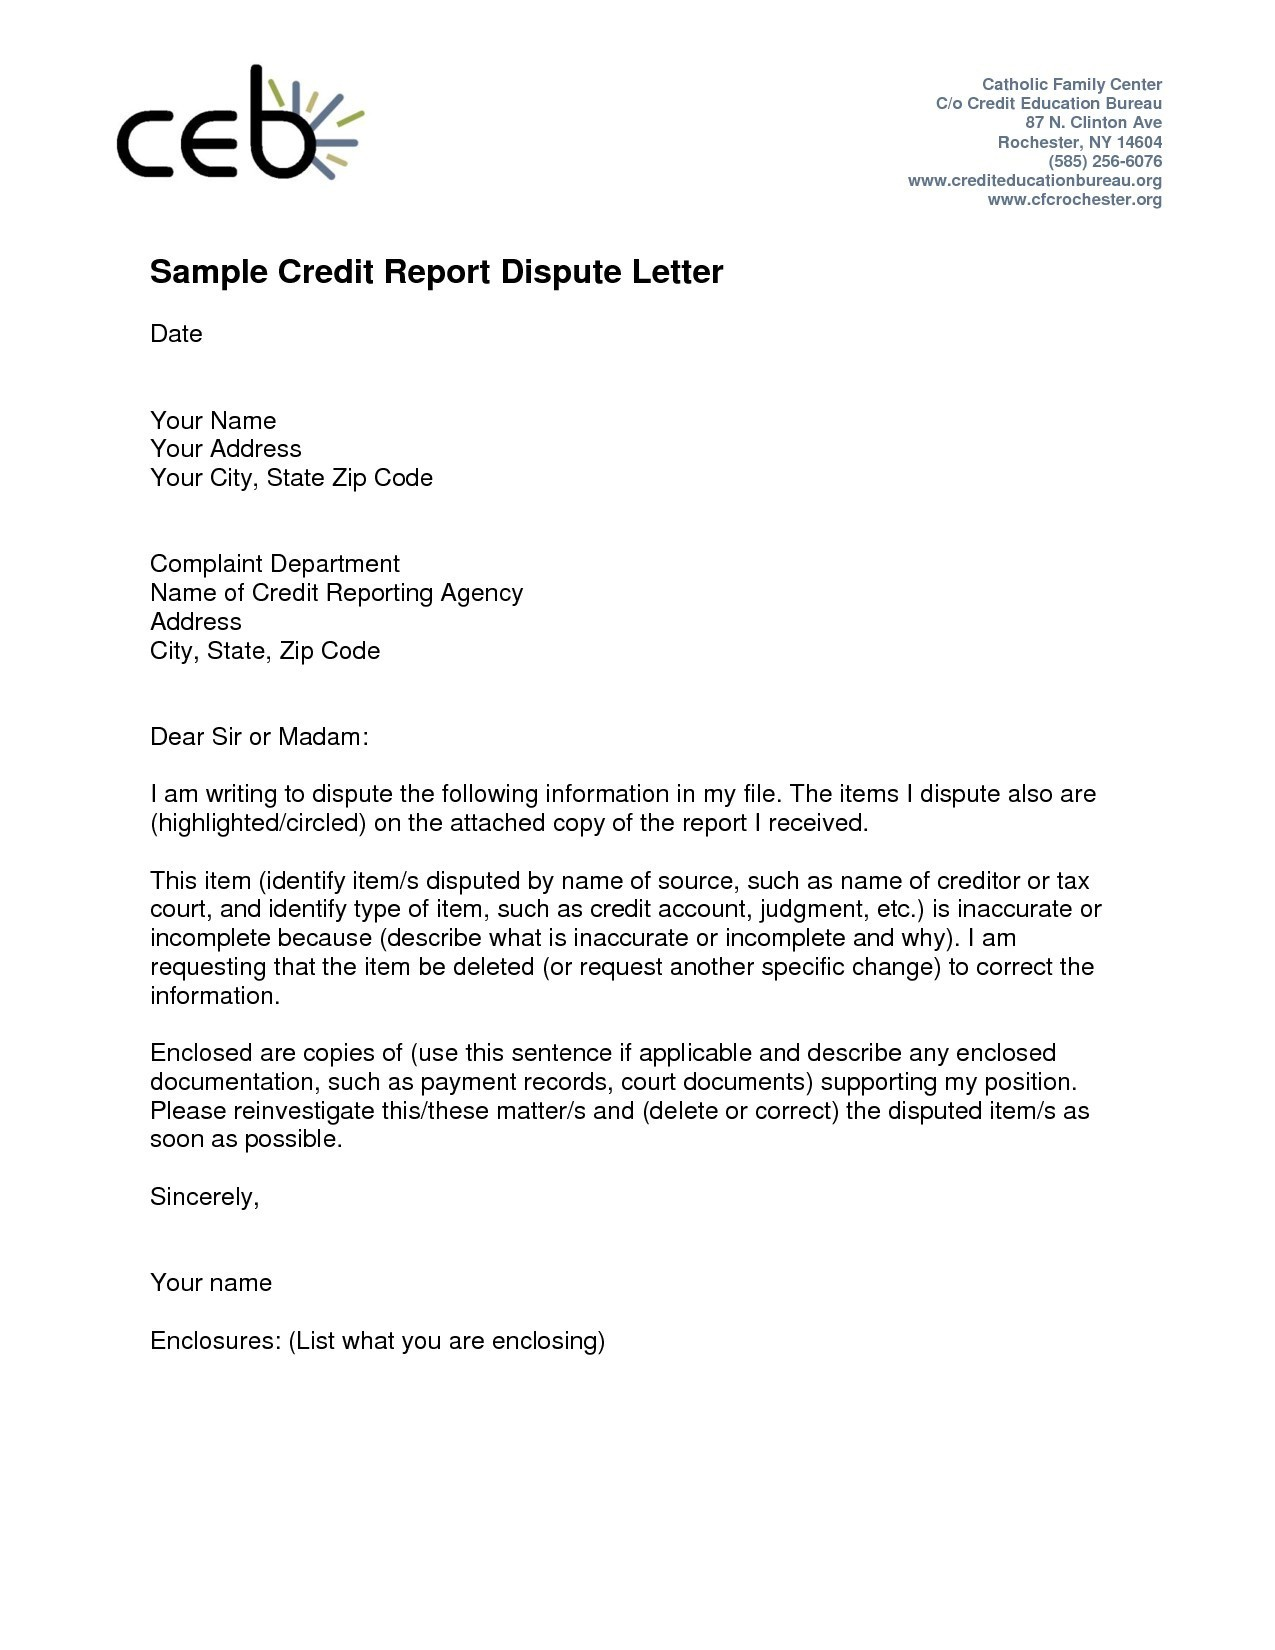 Dispute Credit Report Form Letter